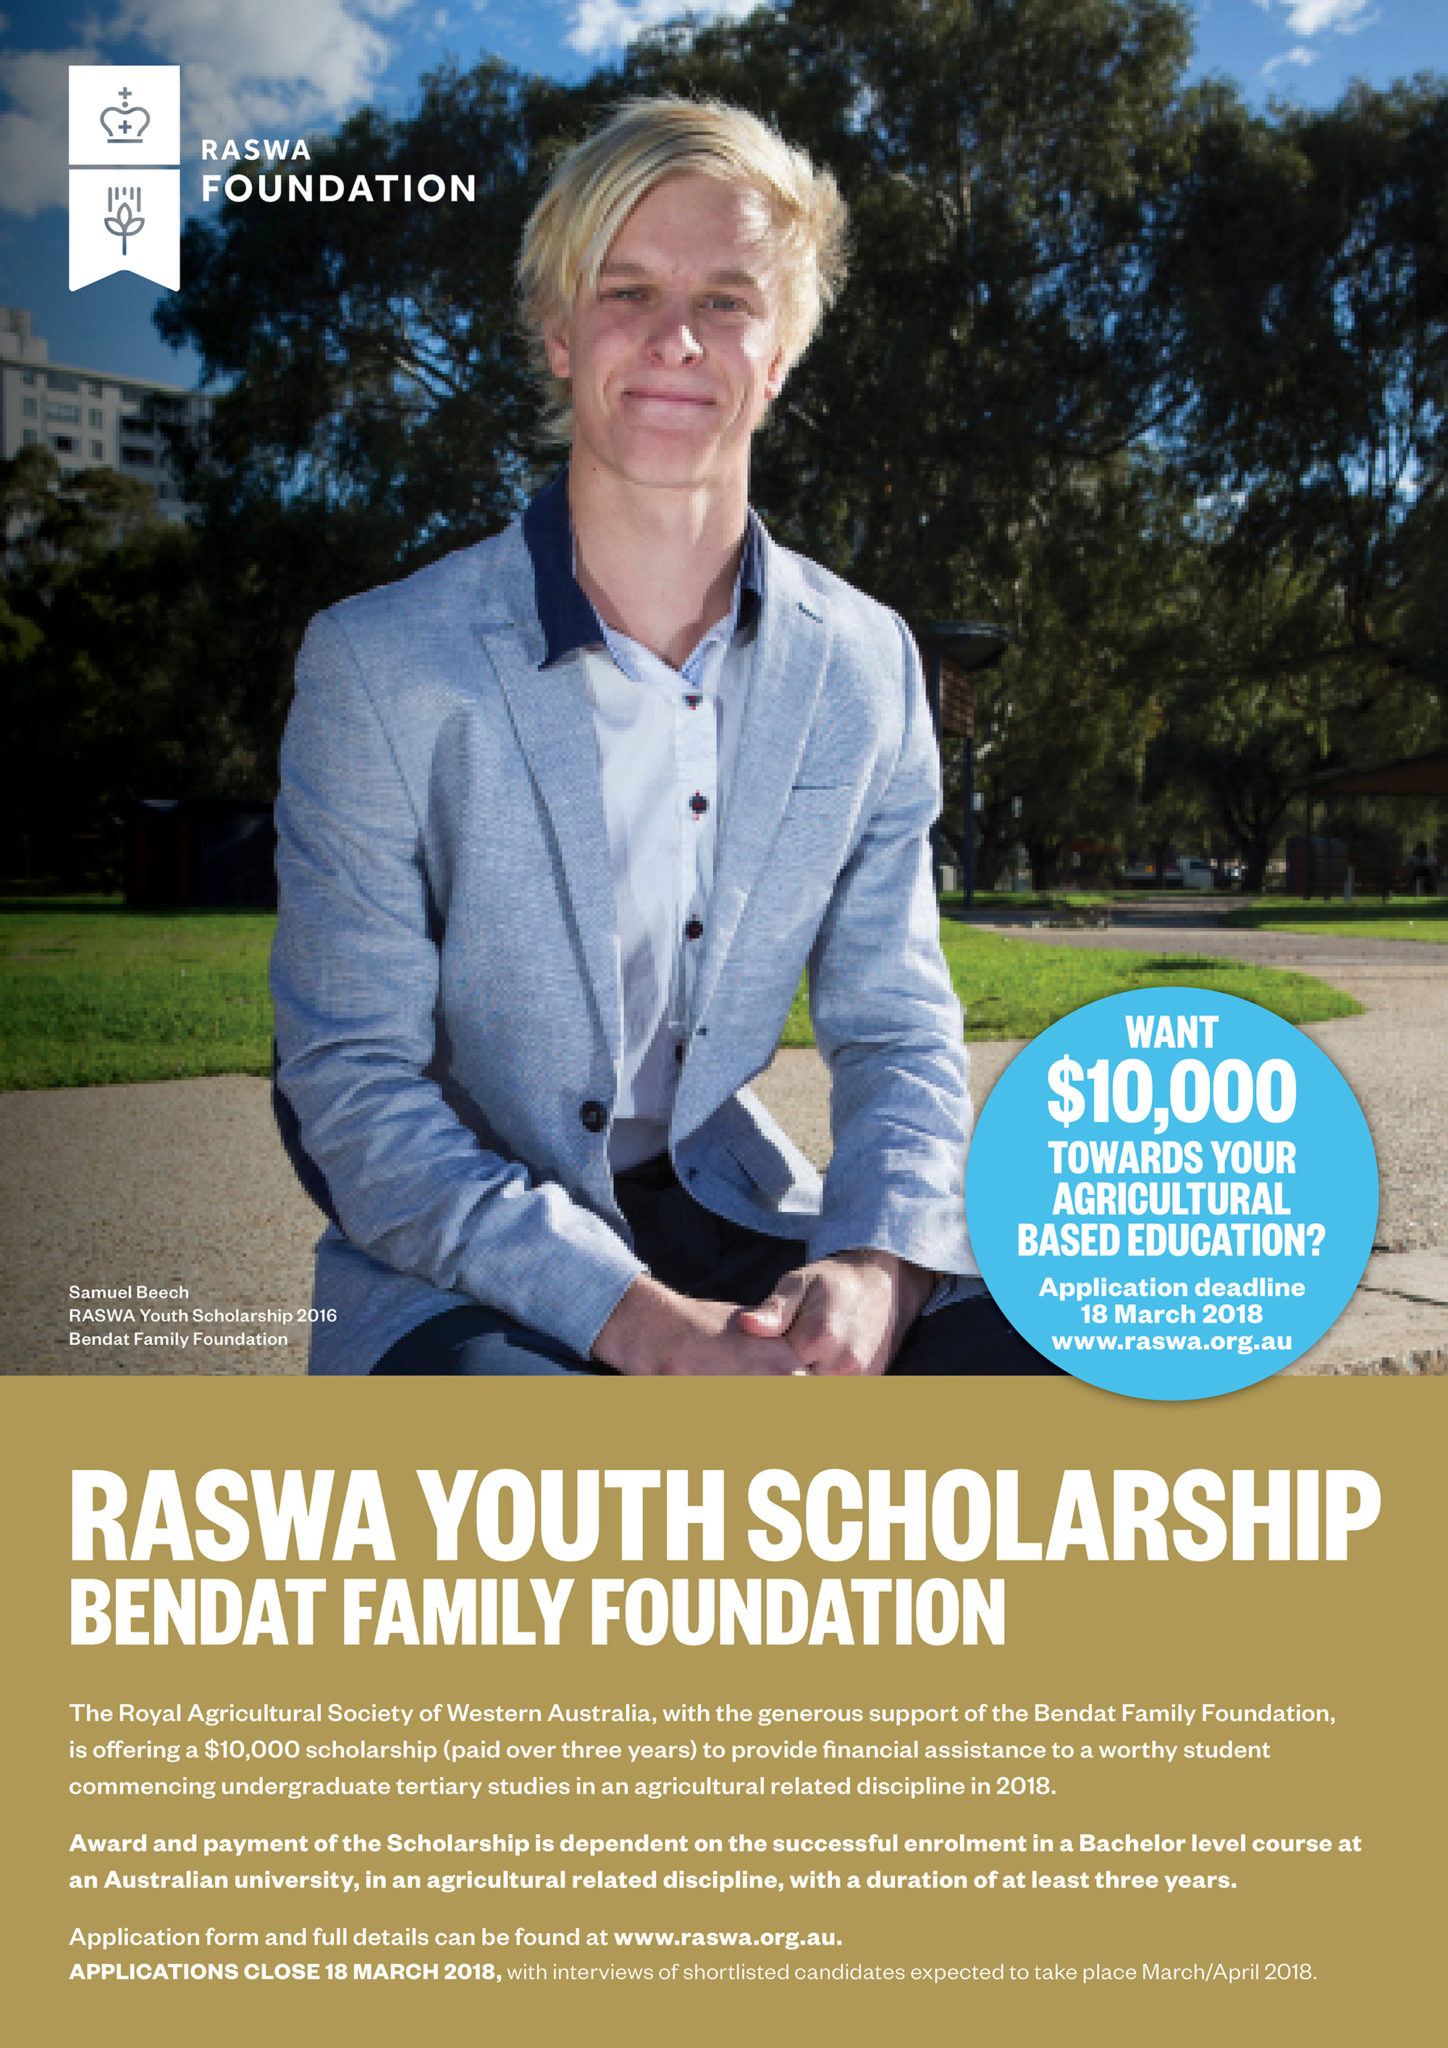 bendat family foundation funidng applications